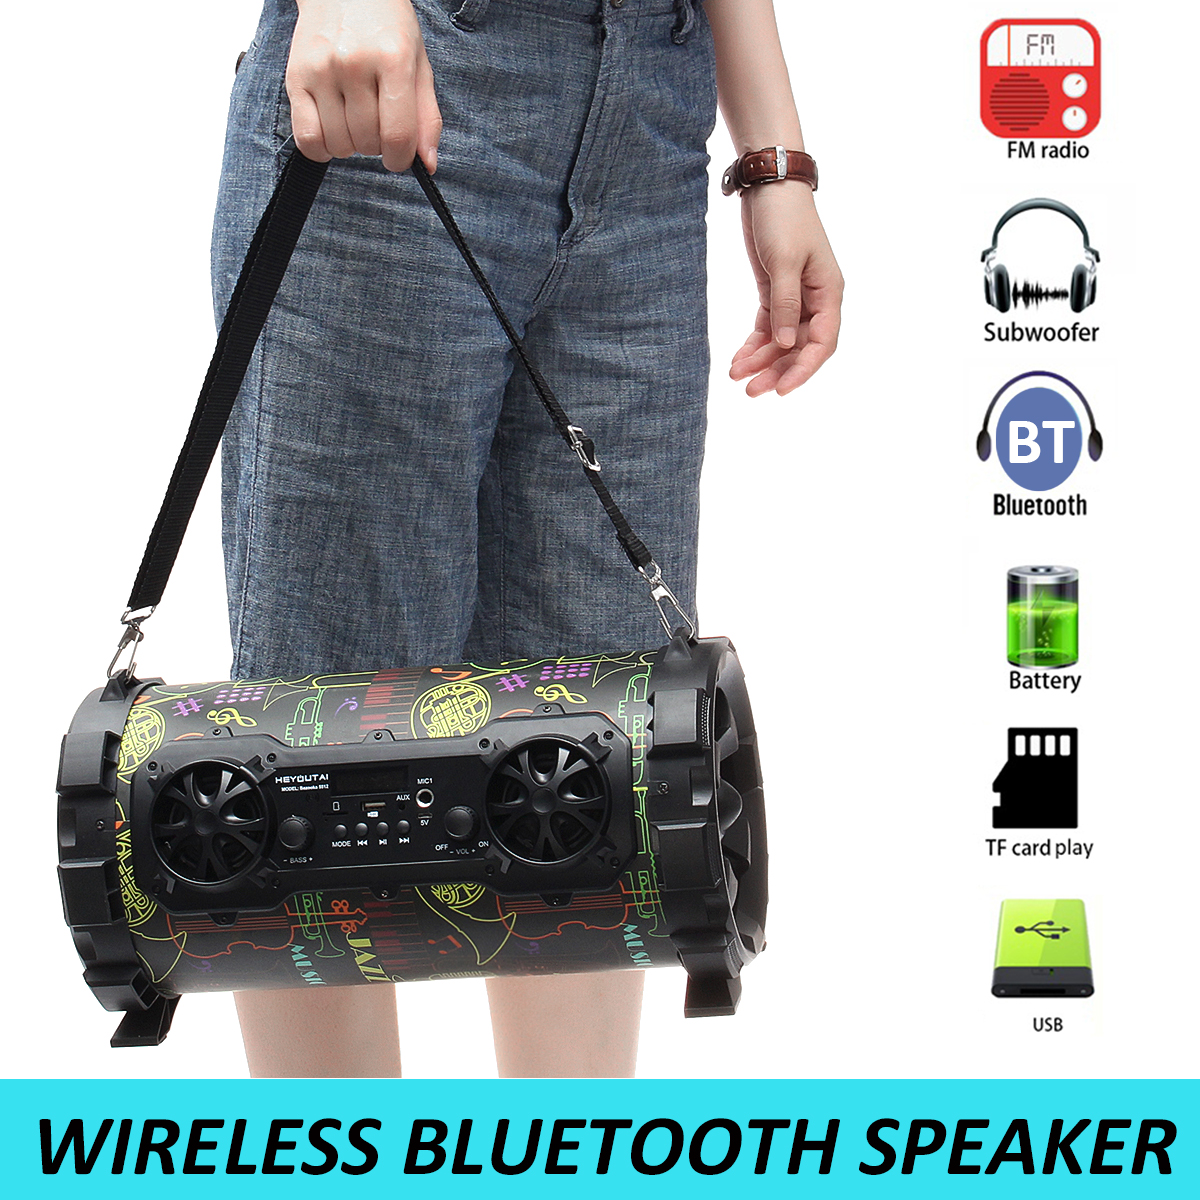 Portable Outdoor Speaker 25W Wireless Bluetooth V4.1 Speaker Loudspeaker Sound System AUX/USB/TF Card/Radio FM Player Music portable bluetooth speaker wireless outdoor stereo bass sound hifi loudspeaker 20w high power big speaker with tf card fm radio